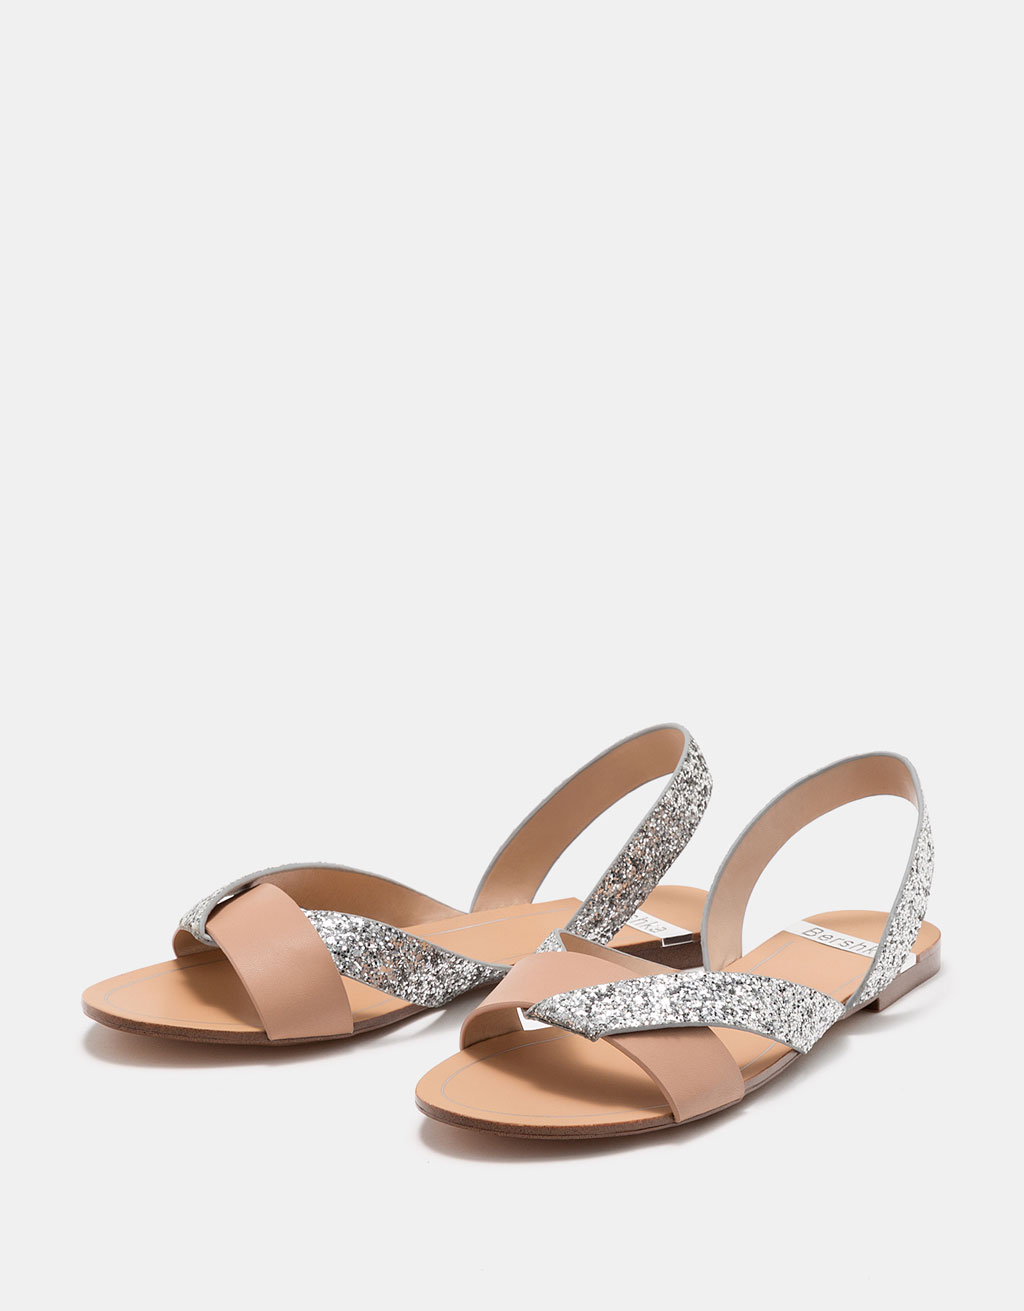 Flat sandals with contrasting shimmer straps